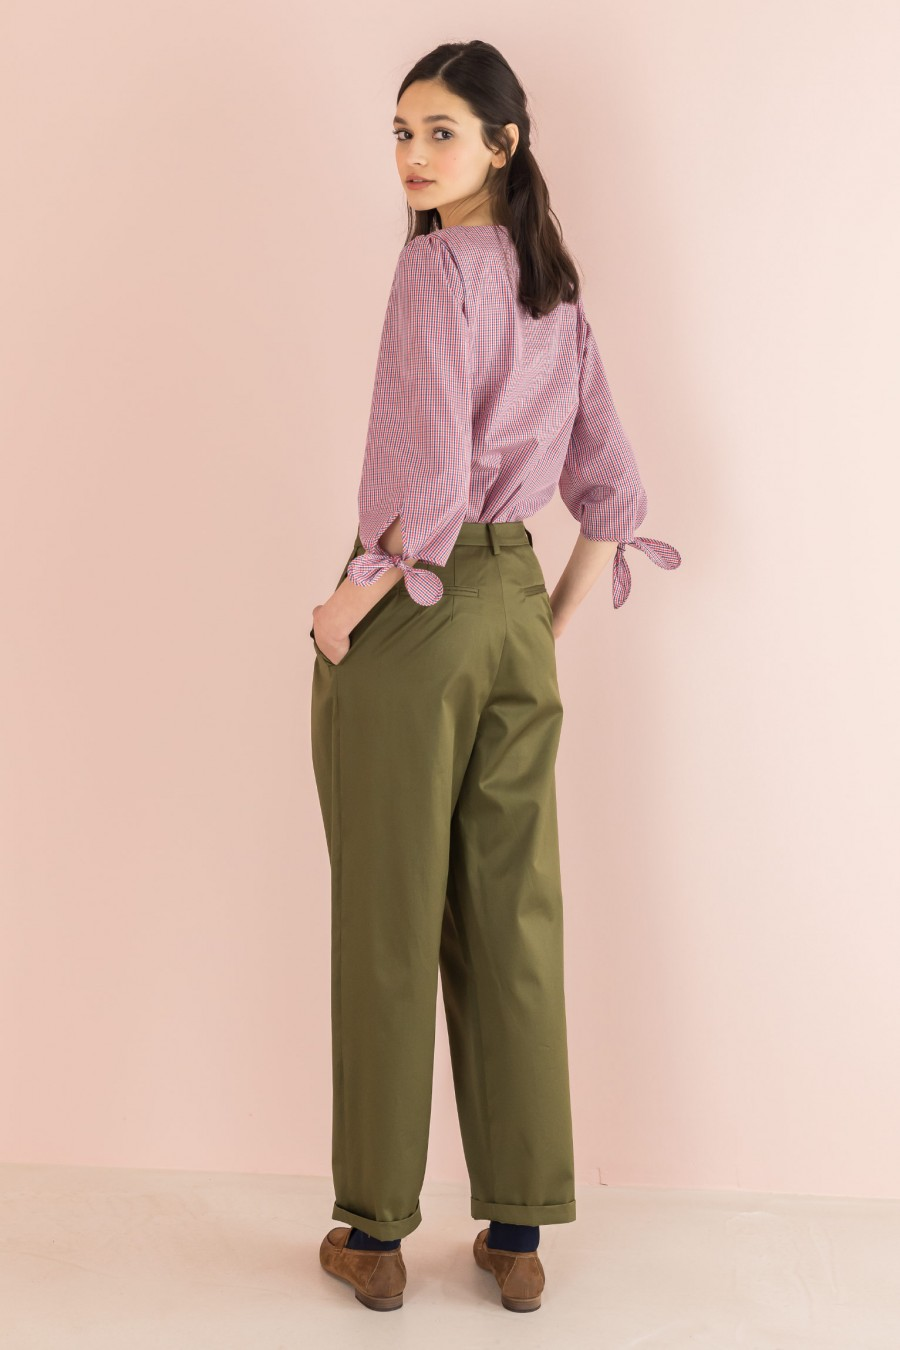 egg-shaped trousers with ruffles on the pockets